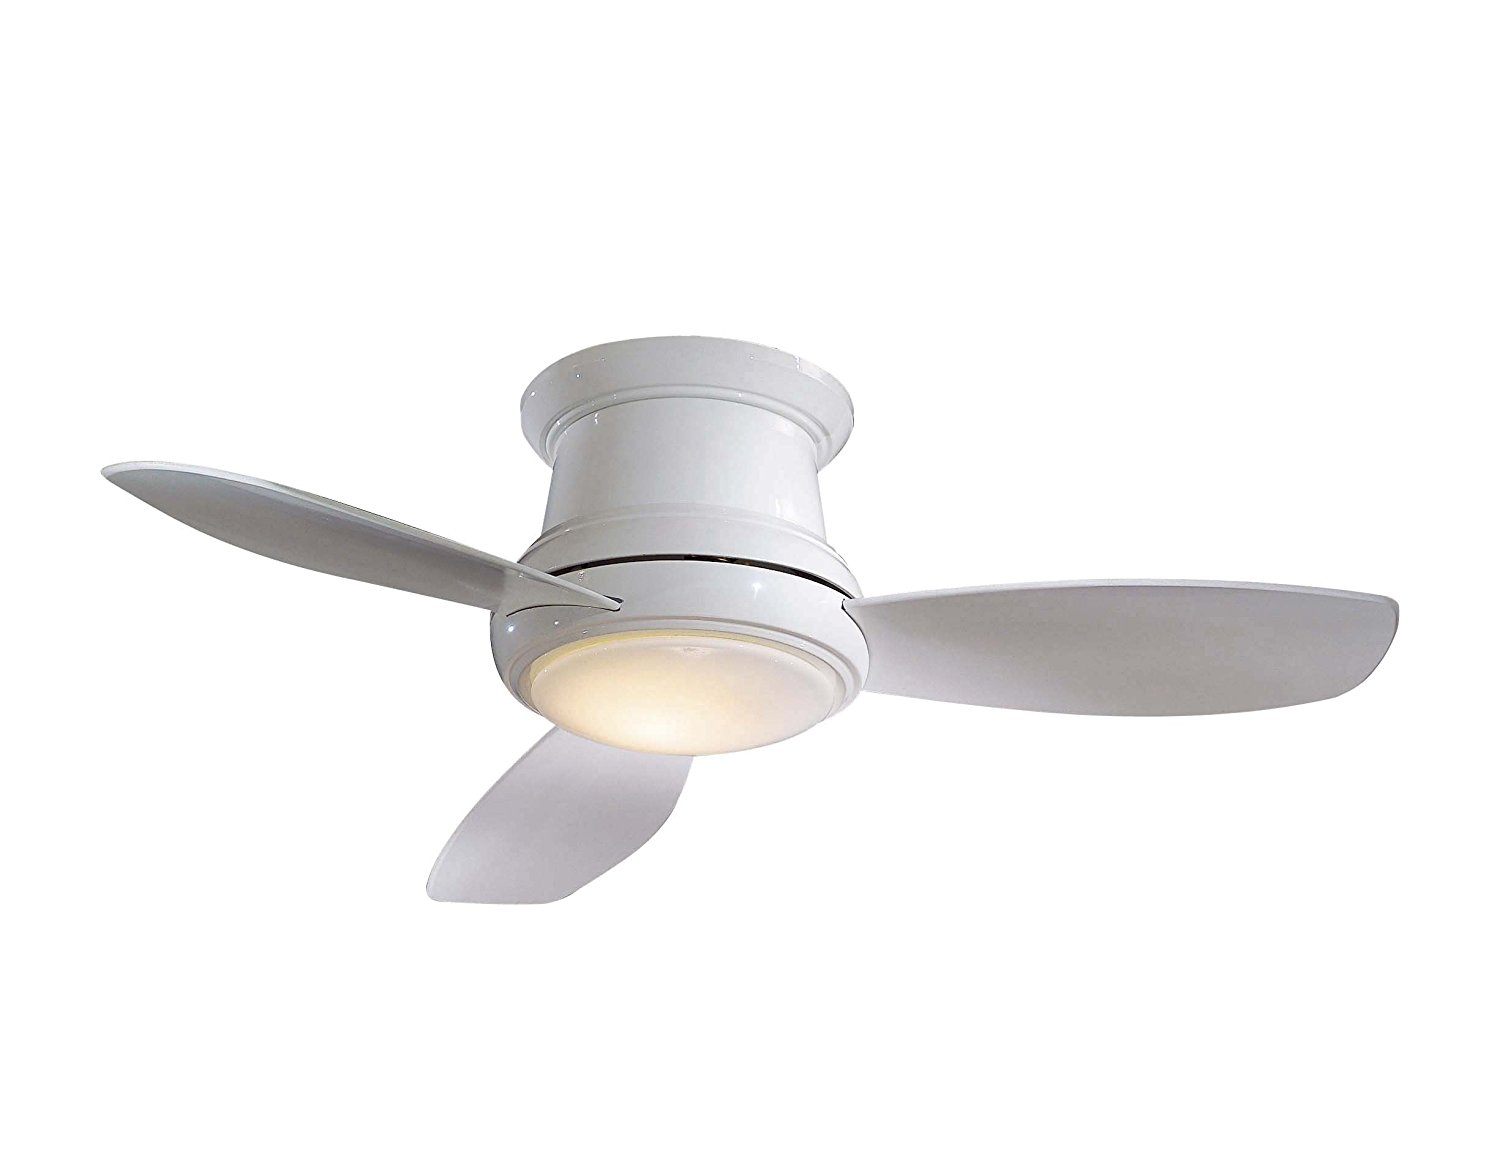 Best Ceiling Fans For Small Rooms Surface Mount Ceiling Fan Top 10 Ideal For Small Spaces